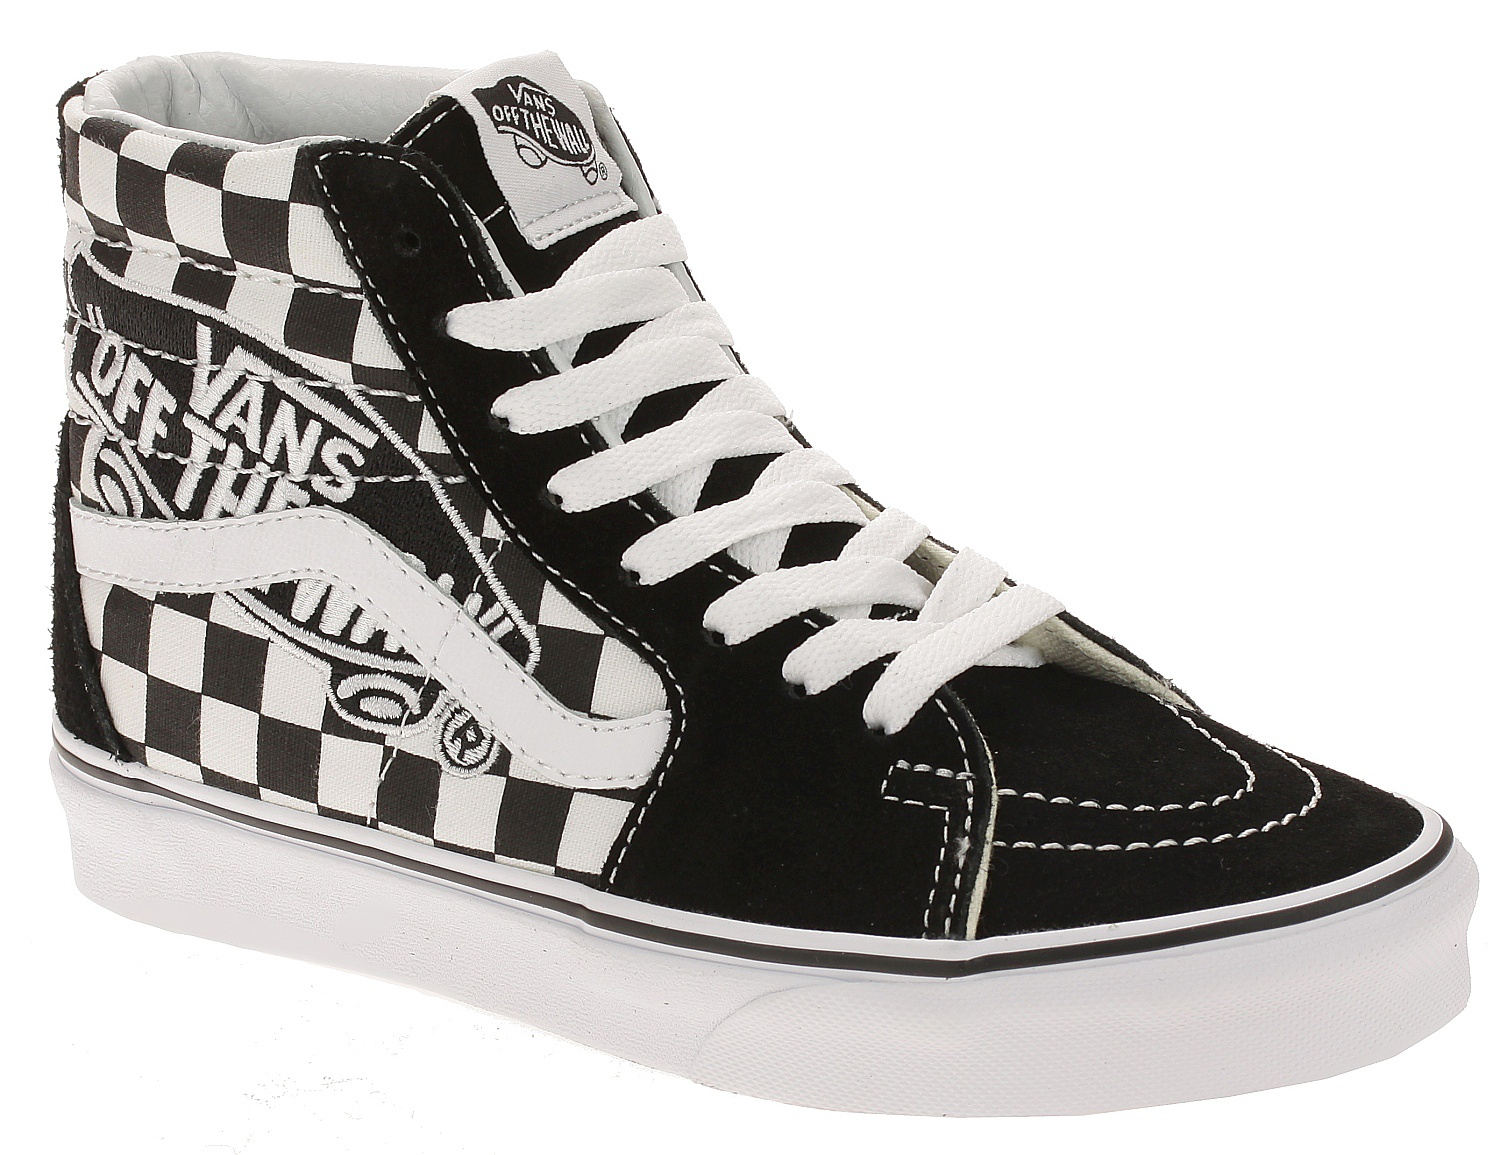 boty Vans Sk8-Hi - Vans Patch Black True White 36 f0622c5a3b